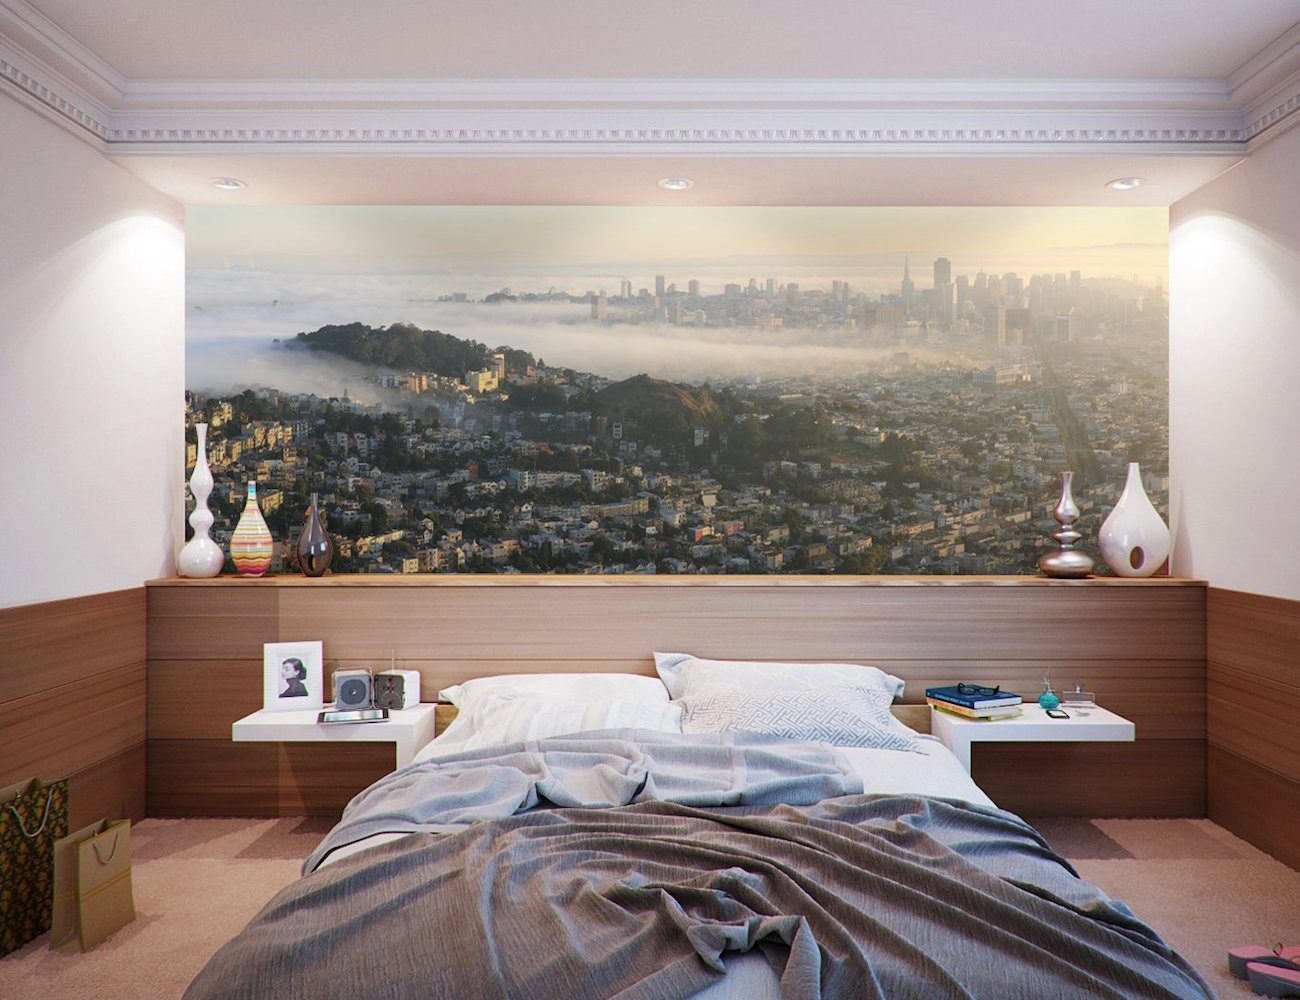 Amazing San Francisco Panoramic Skyline Wall Mural by Eazywallz